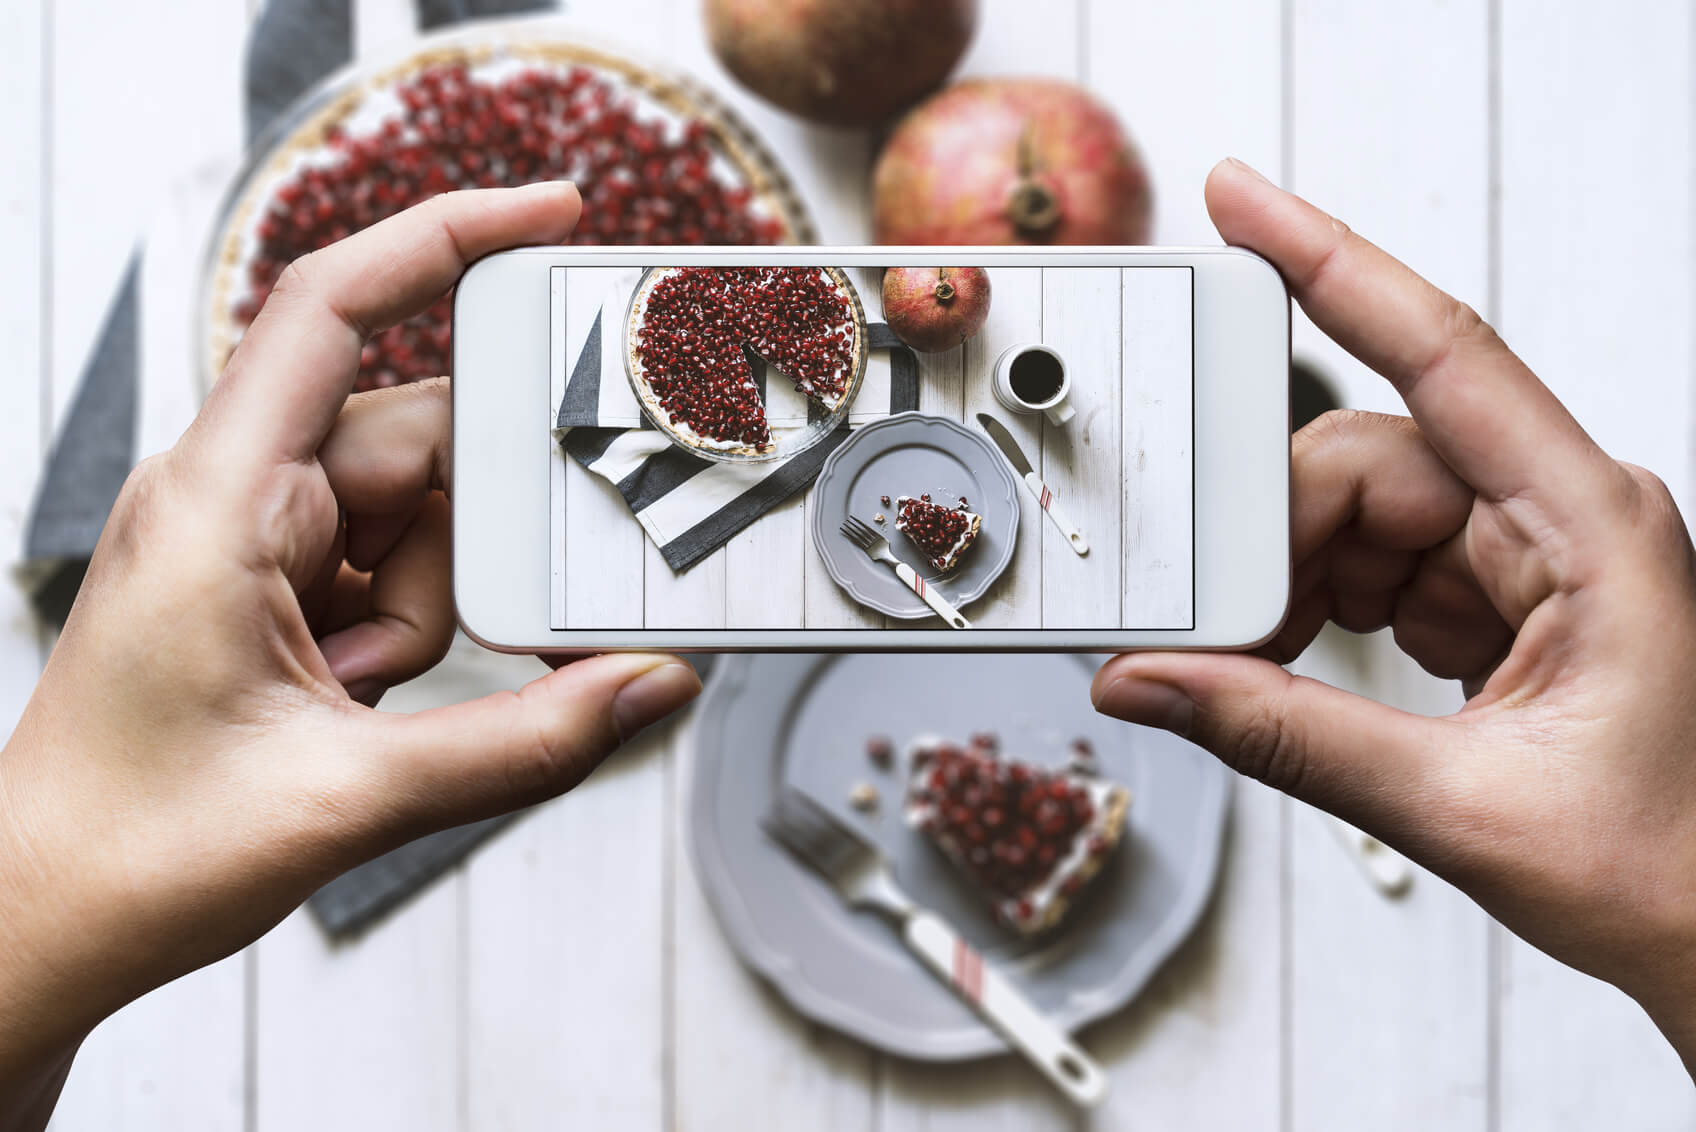 How to Take the Perfect Food Photo